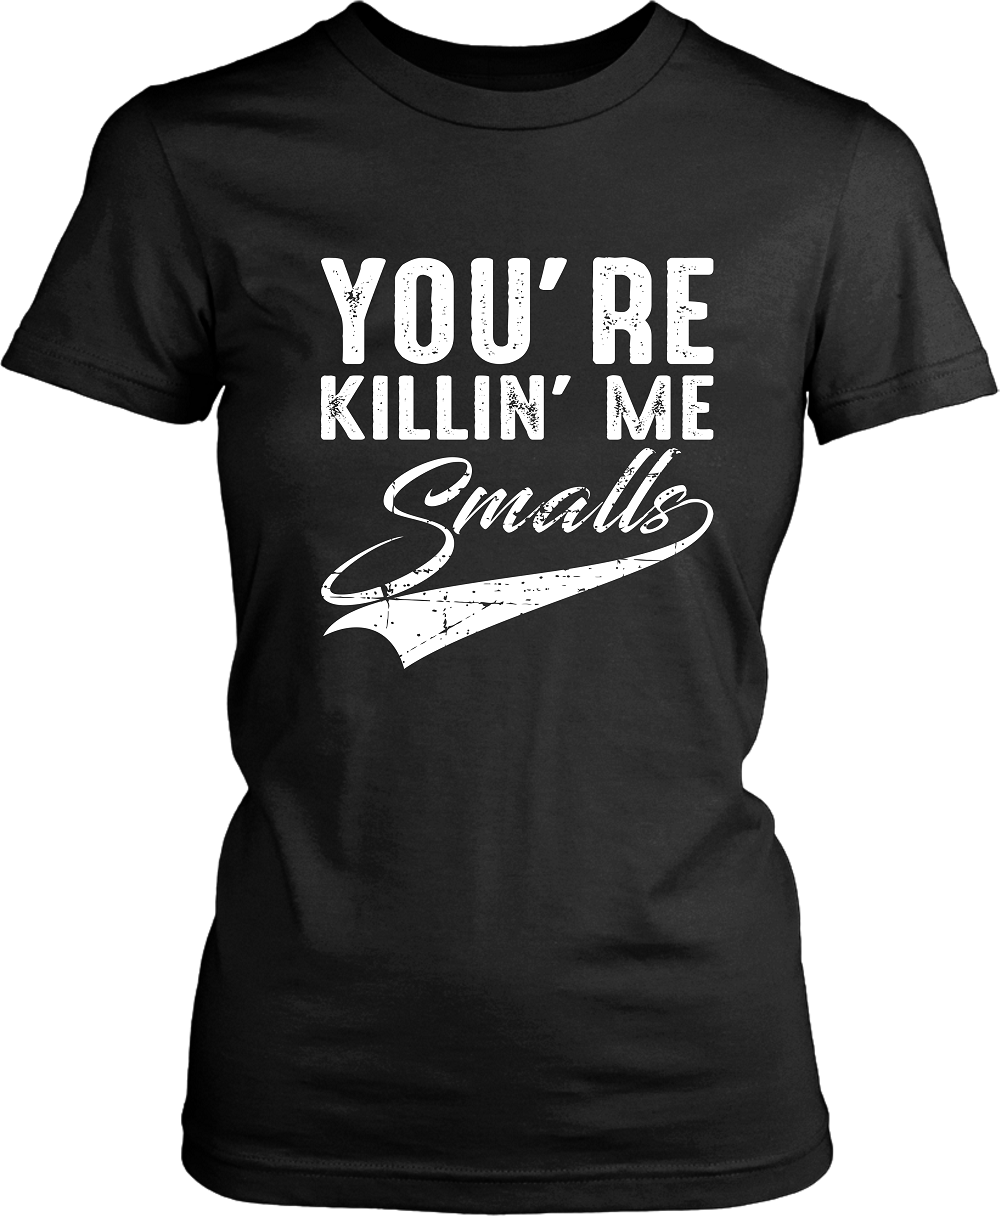 Black T-shirt Mock-up with popular movie quote You're Killin'  me Small's design on the front , now available from the Xpert Apparel Store